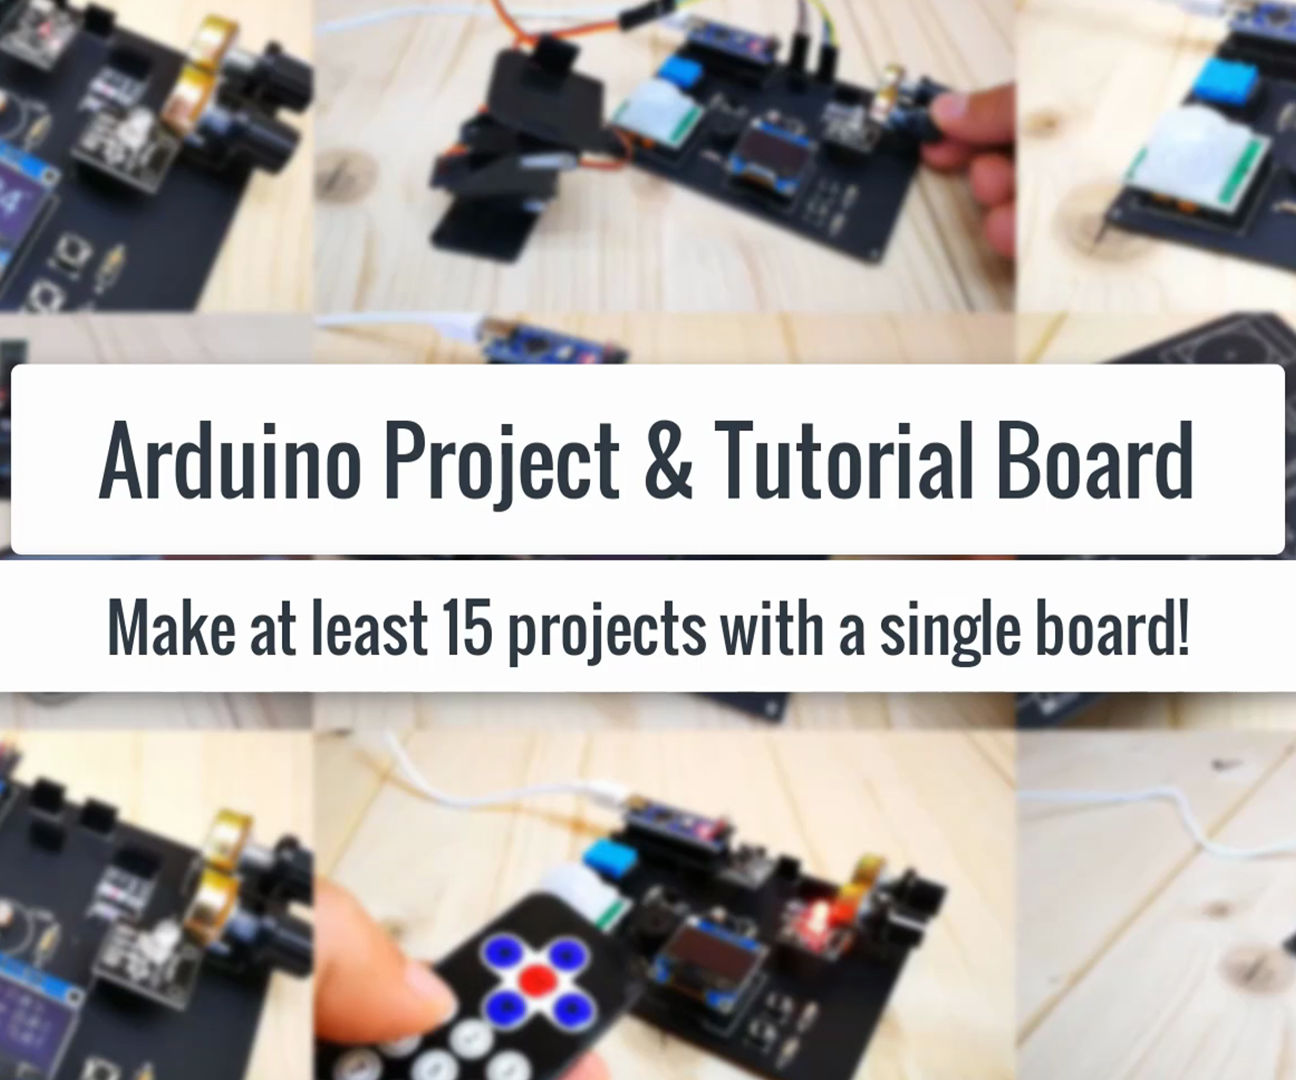 10 Basic Arduino Projects for Beginners! Make at Least 15 Projects With a Single Board!